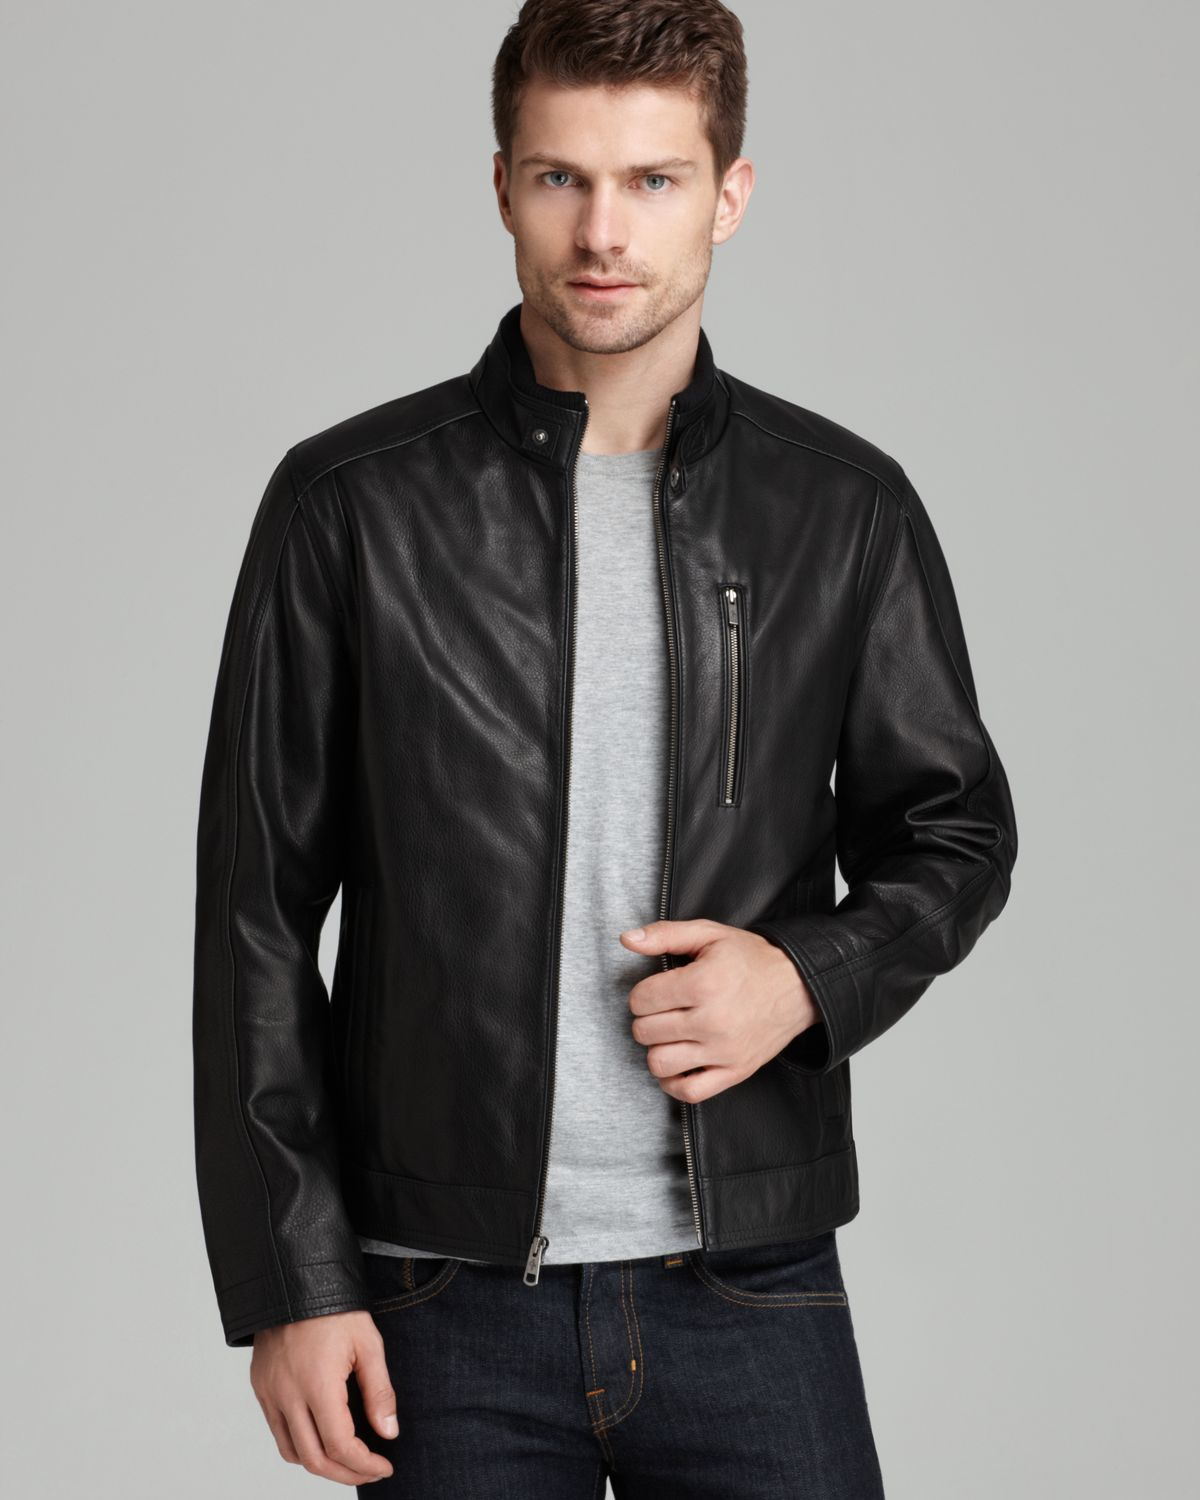 Dress shirt with leather jacket